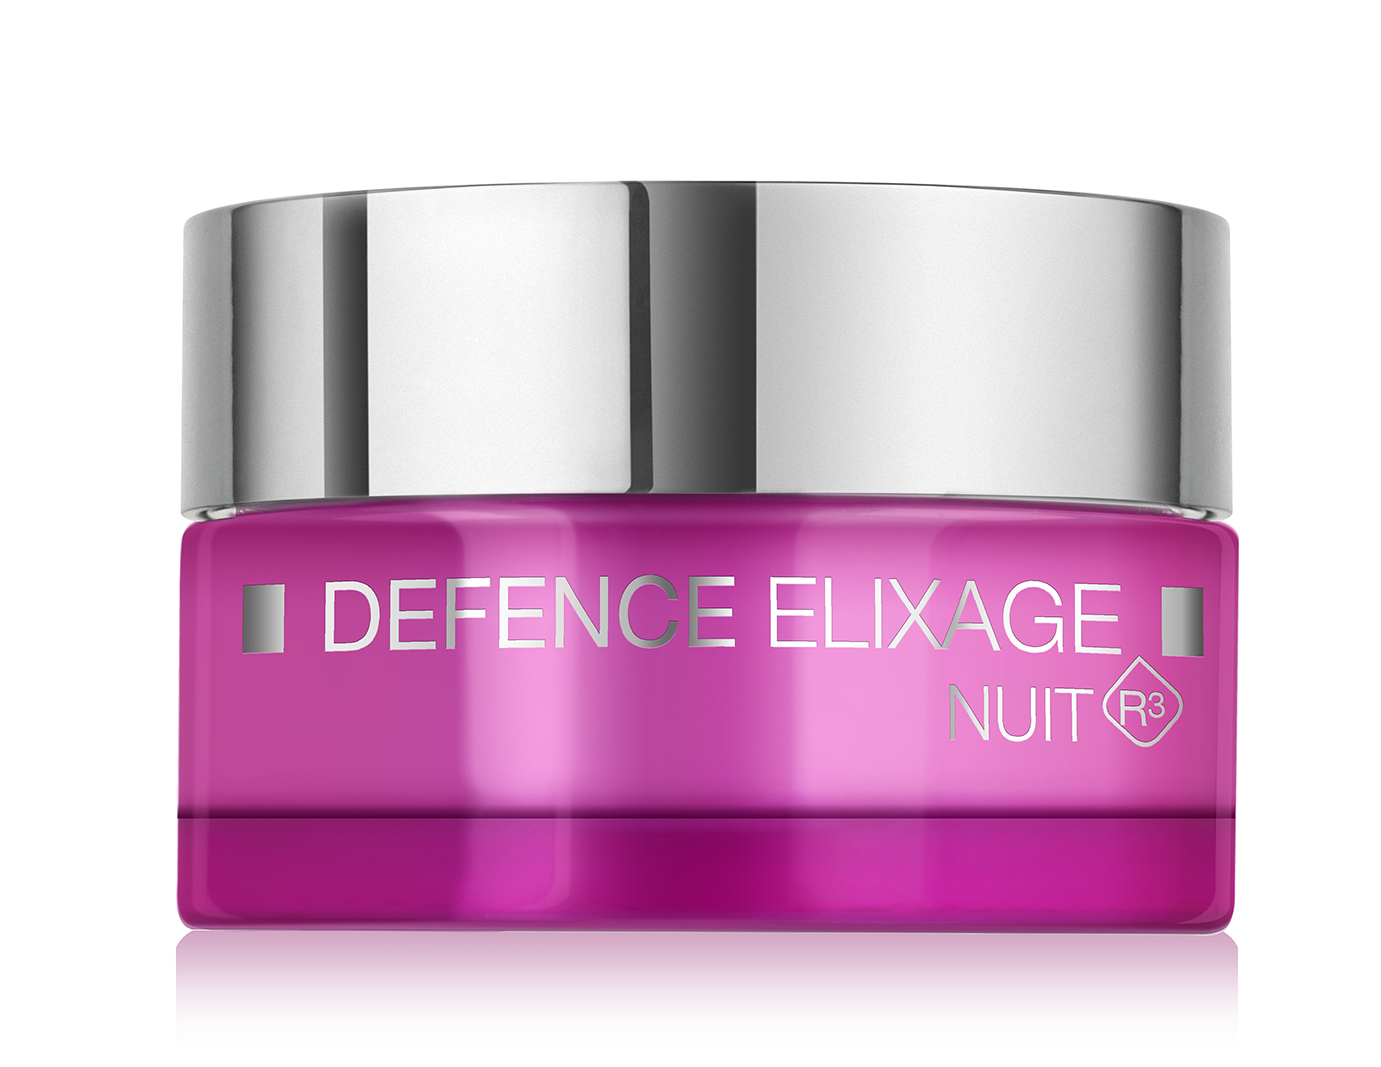 DEFENCE ELIXAGE NUIT r3 Trattamento intensivo notte_BioNike